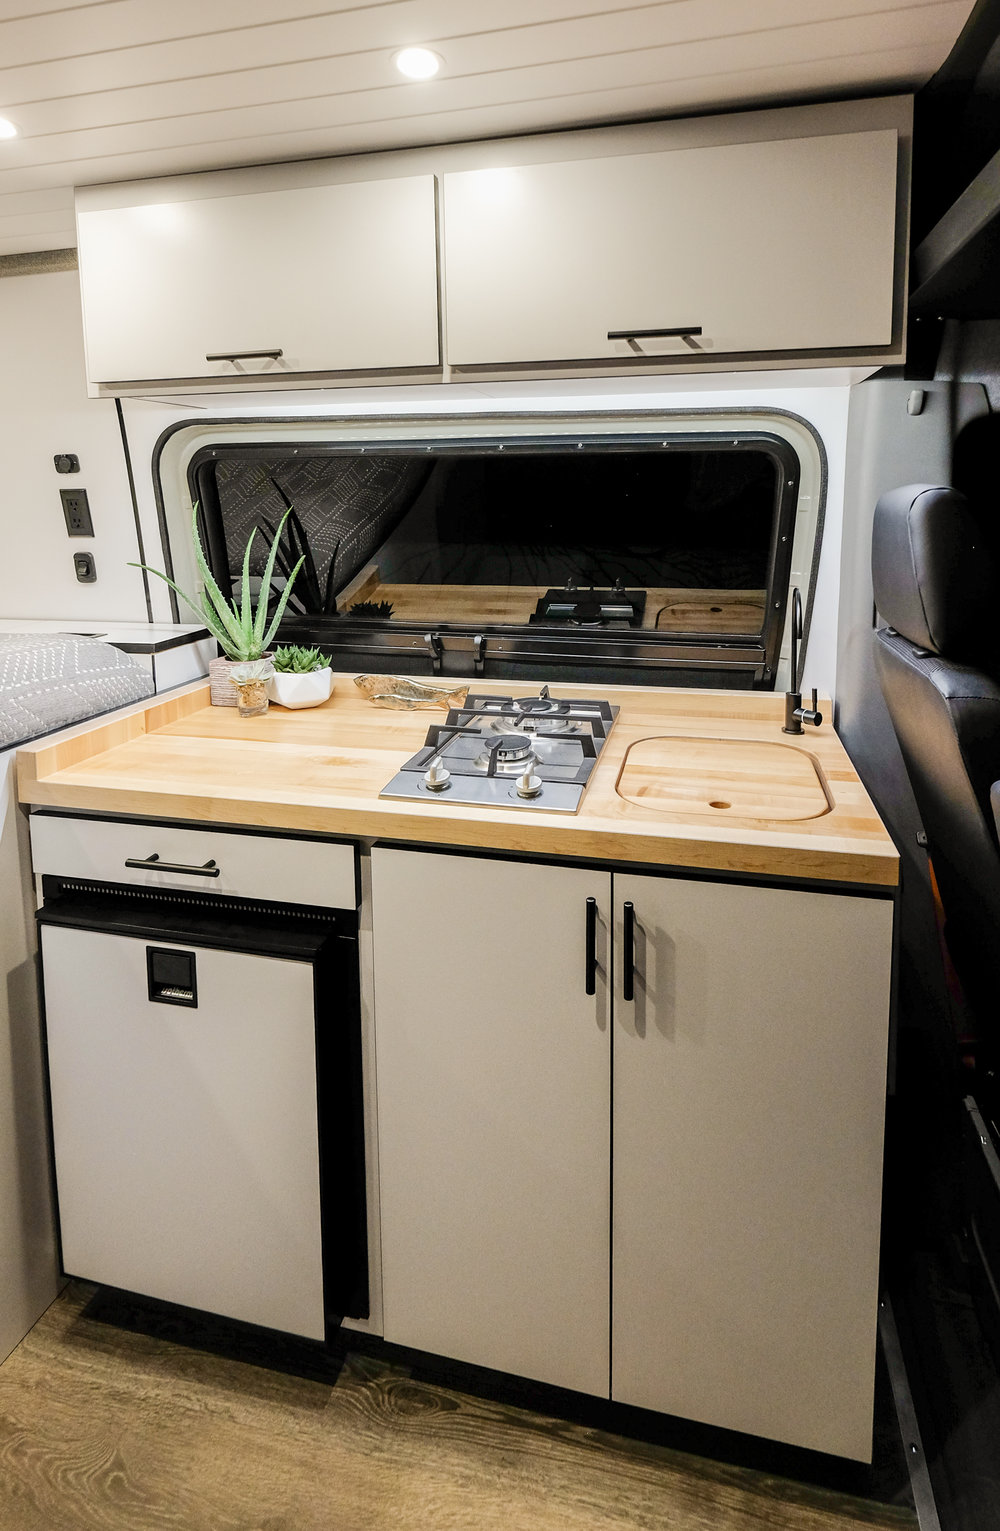 JOMOVAN'S kitchenette is equipped with an  Isotherm 85 Elegance  refrigerator, two burner cook top, a high capacity water filtration system, and a jet black filtered drinking faucet to match the modern aesthetic.